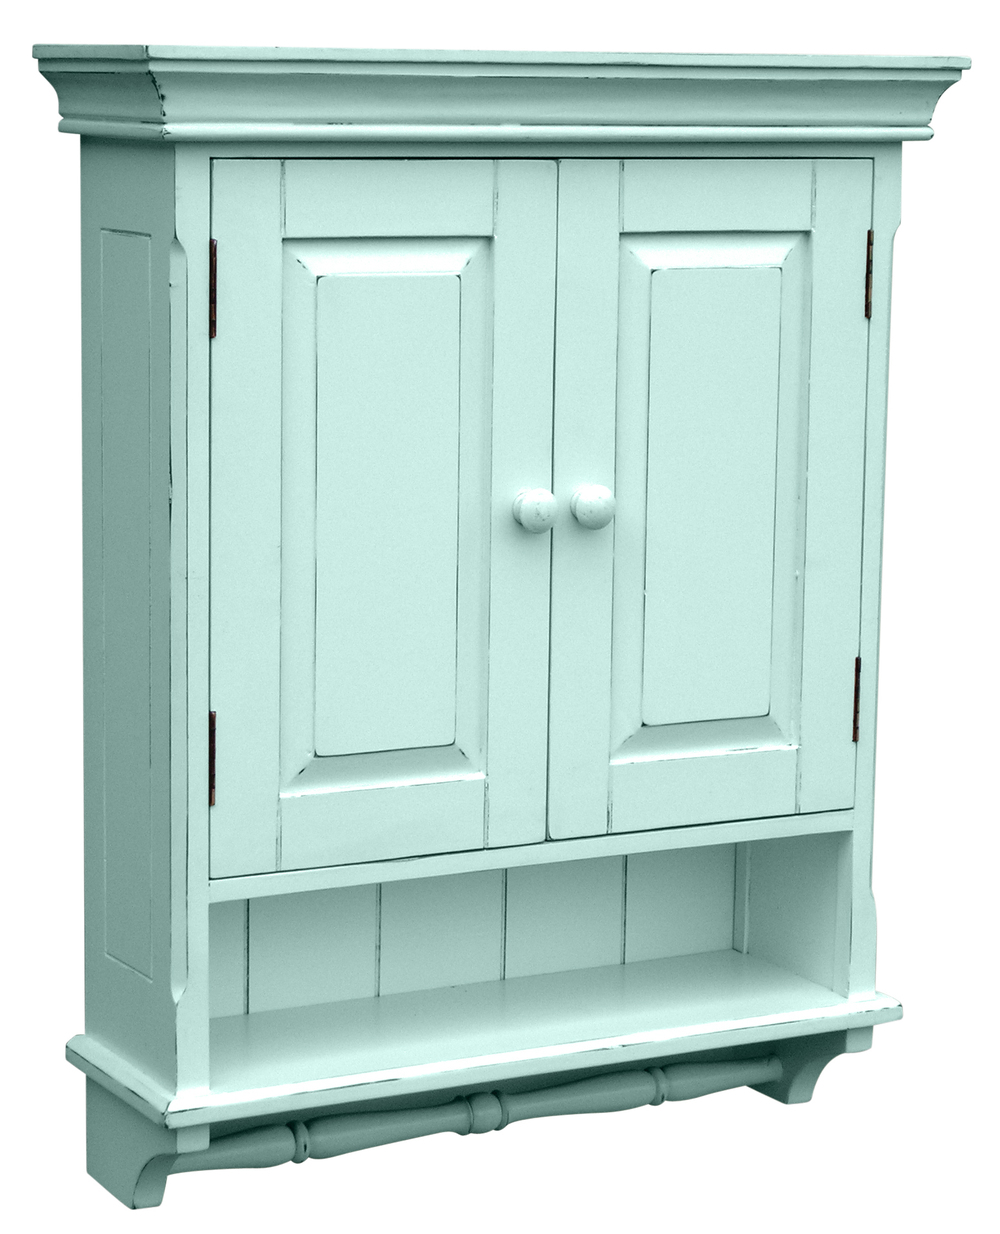 Trade Winds Furniture - Provincial Mirrored Cabinet